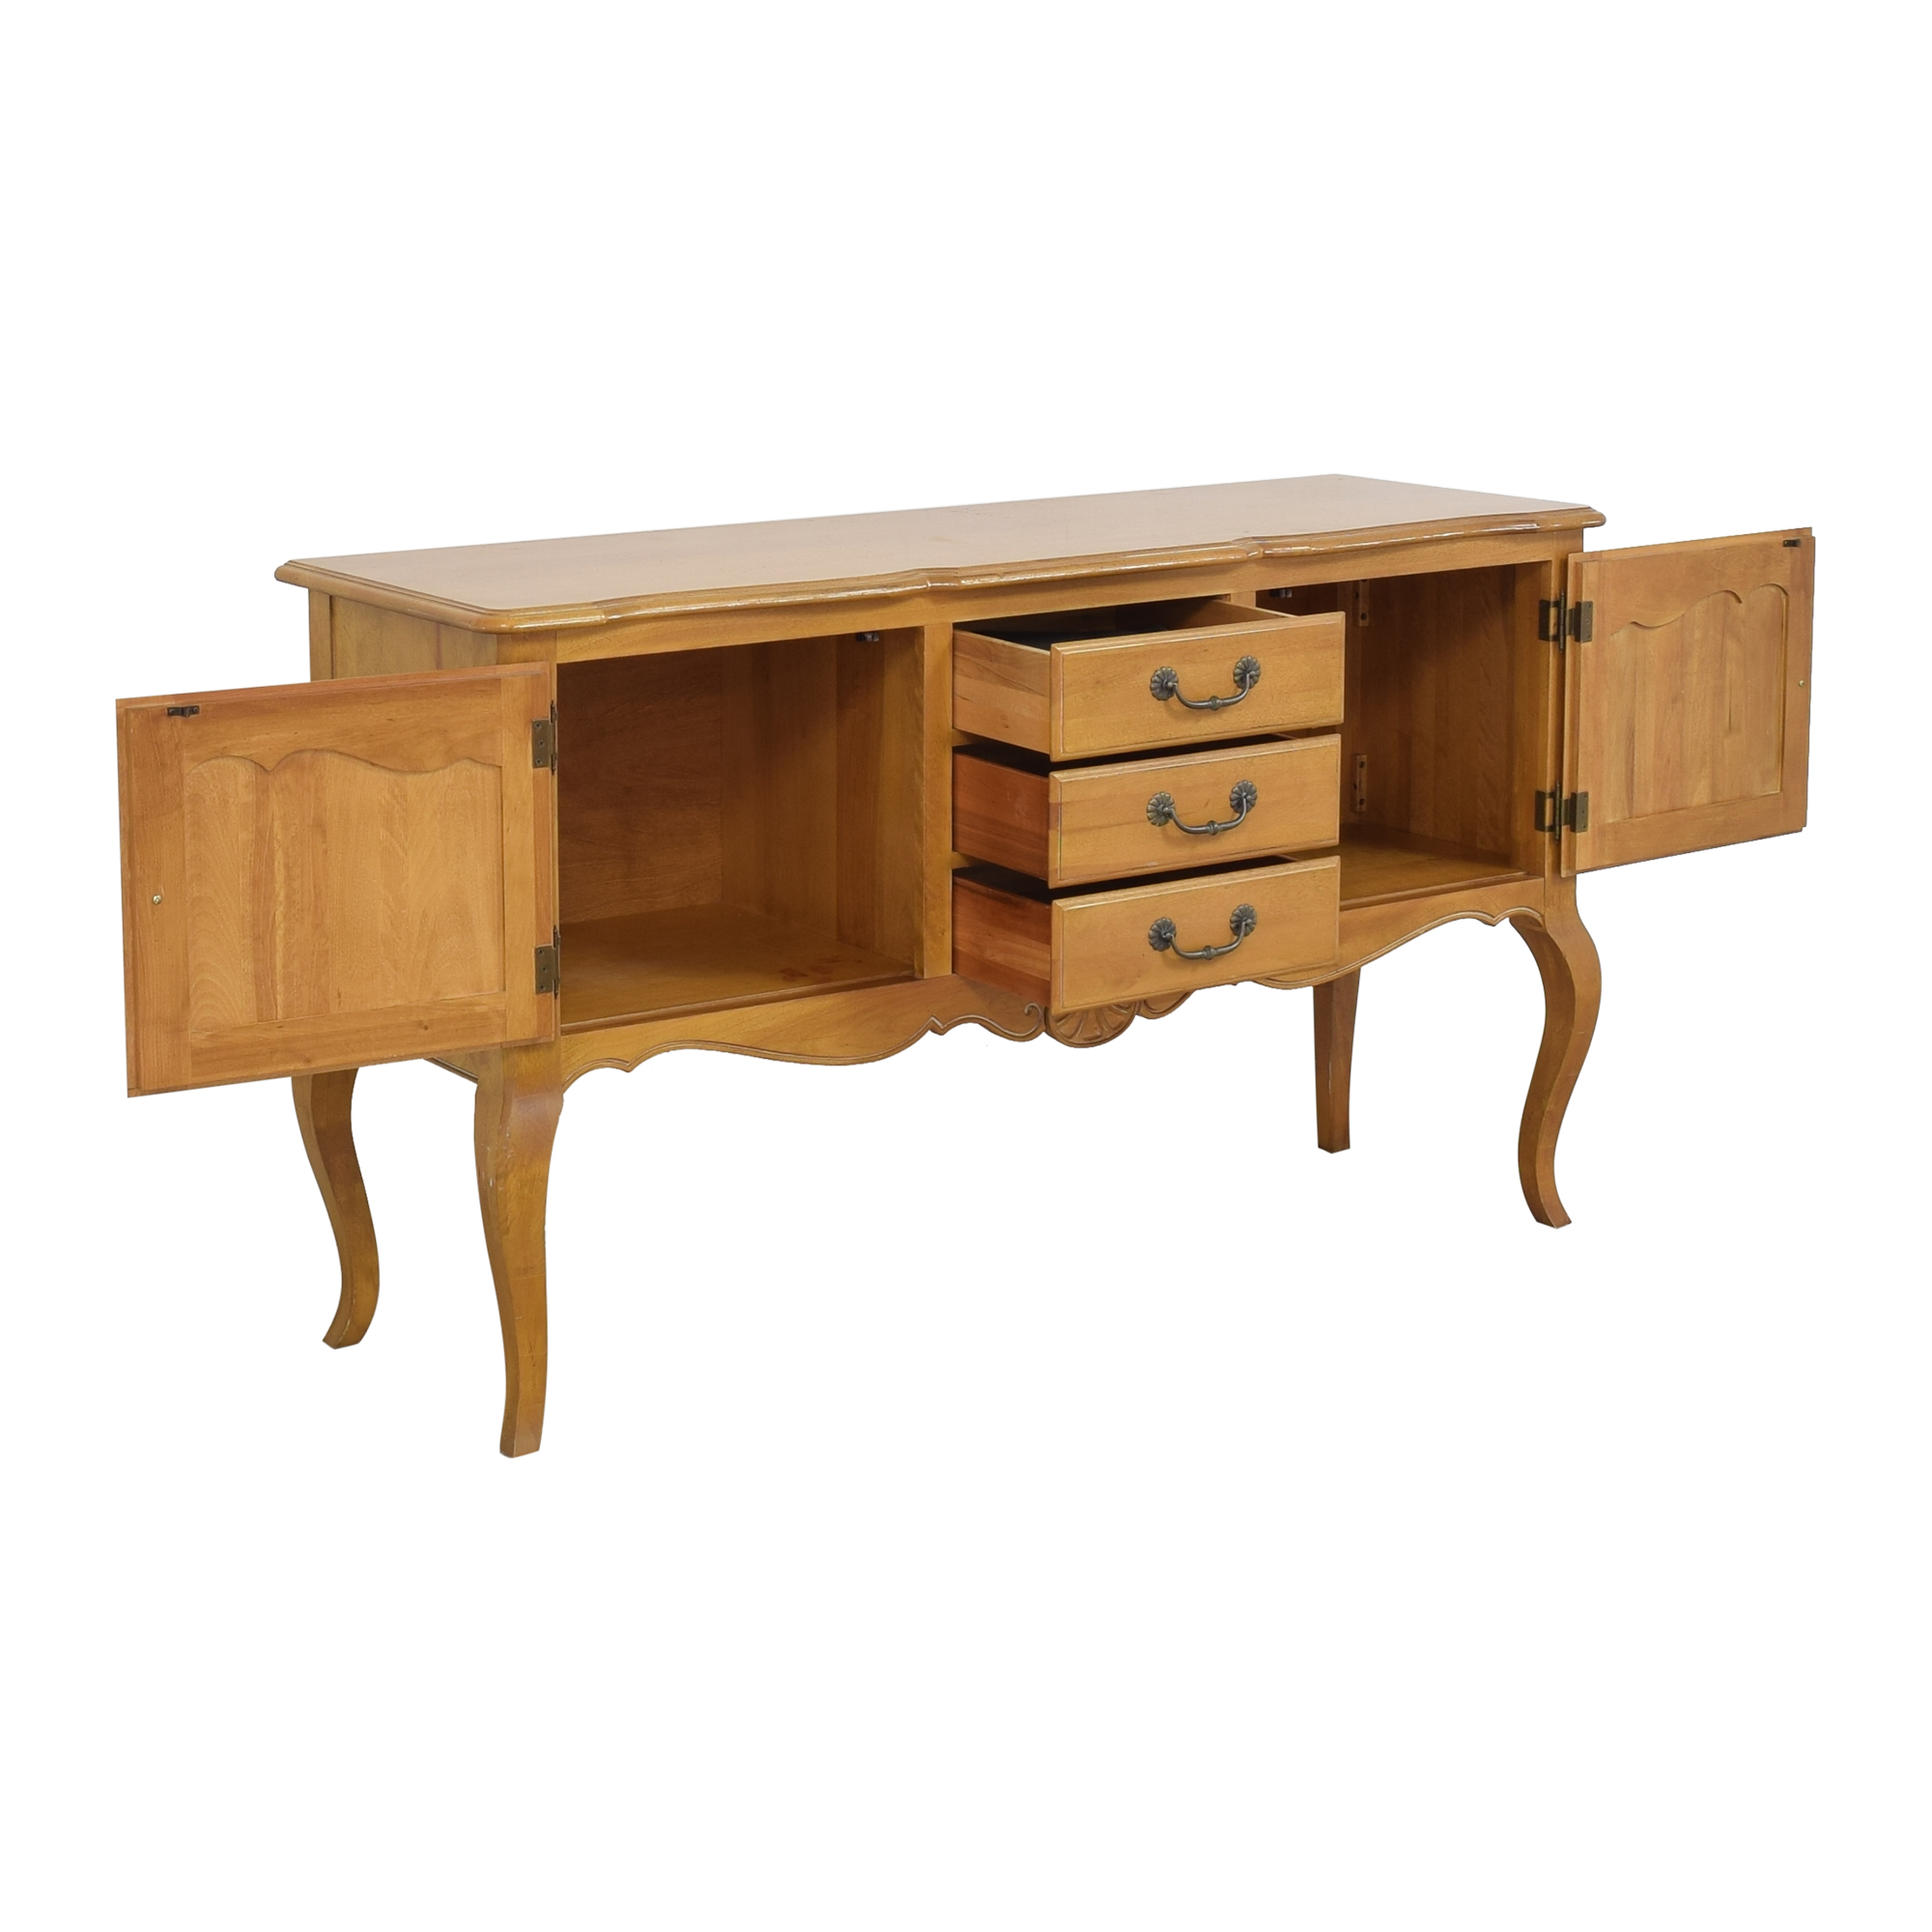 Ethan Allen Ethan Allen French Country Sideboard on sale